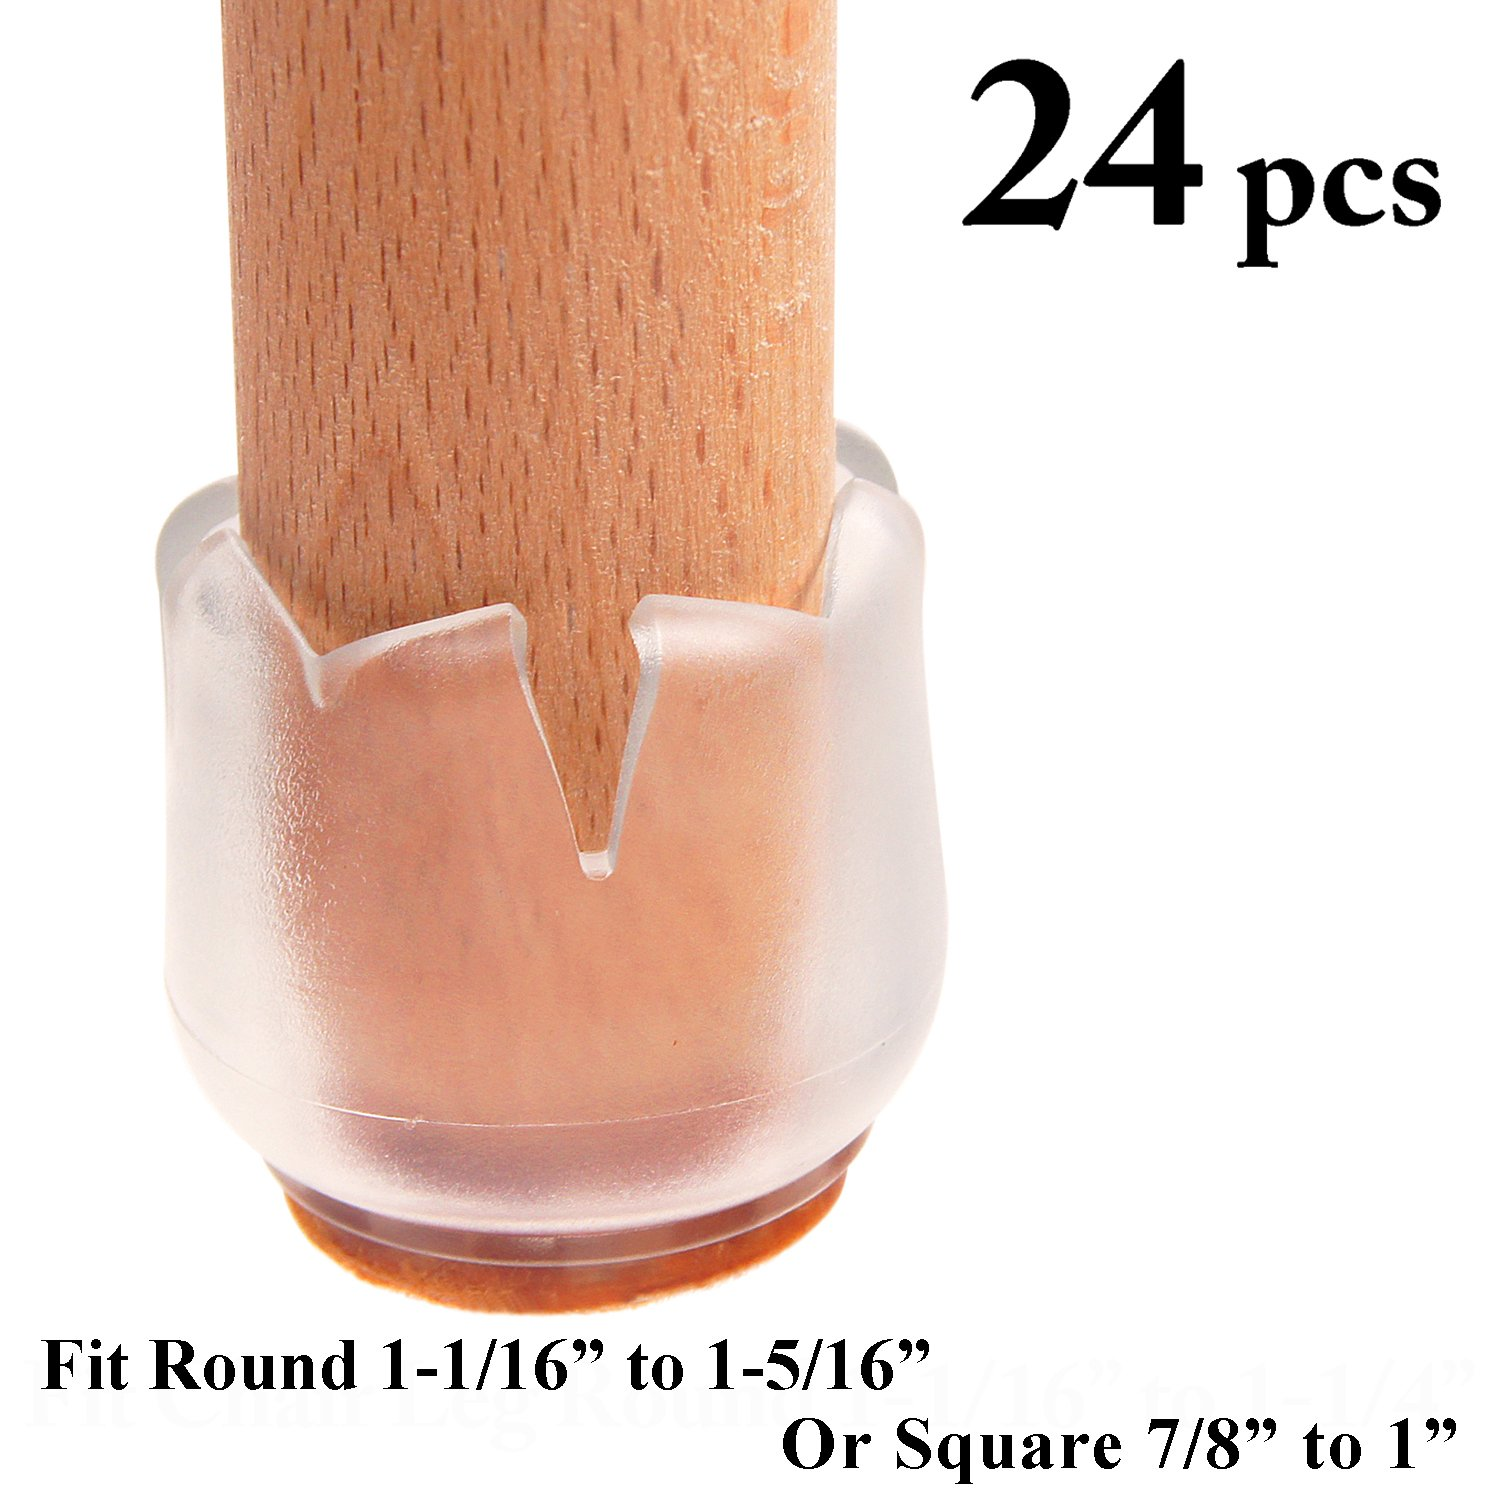 LimBridge Chair Leg Wood Floor Protectors, Chair Feet Glides Furniture Carpet Saver, Silicone Caps with Felt Pads #4, ROUND 1-1/16'' to 1-1/4'' (2.7-3.1cm) and SQUARE 7/8'' to 1'' (2.2-2.6cm) 24 Pack